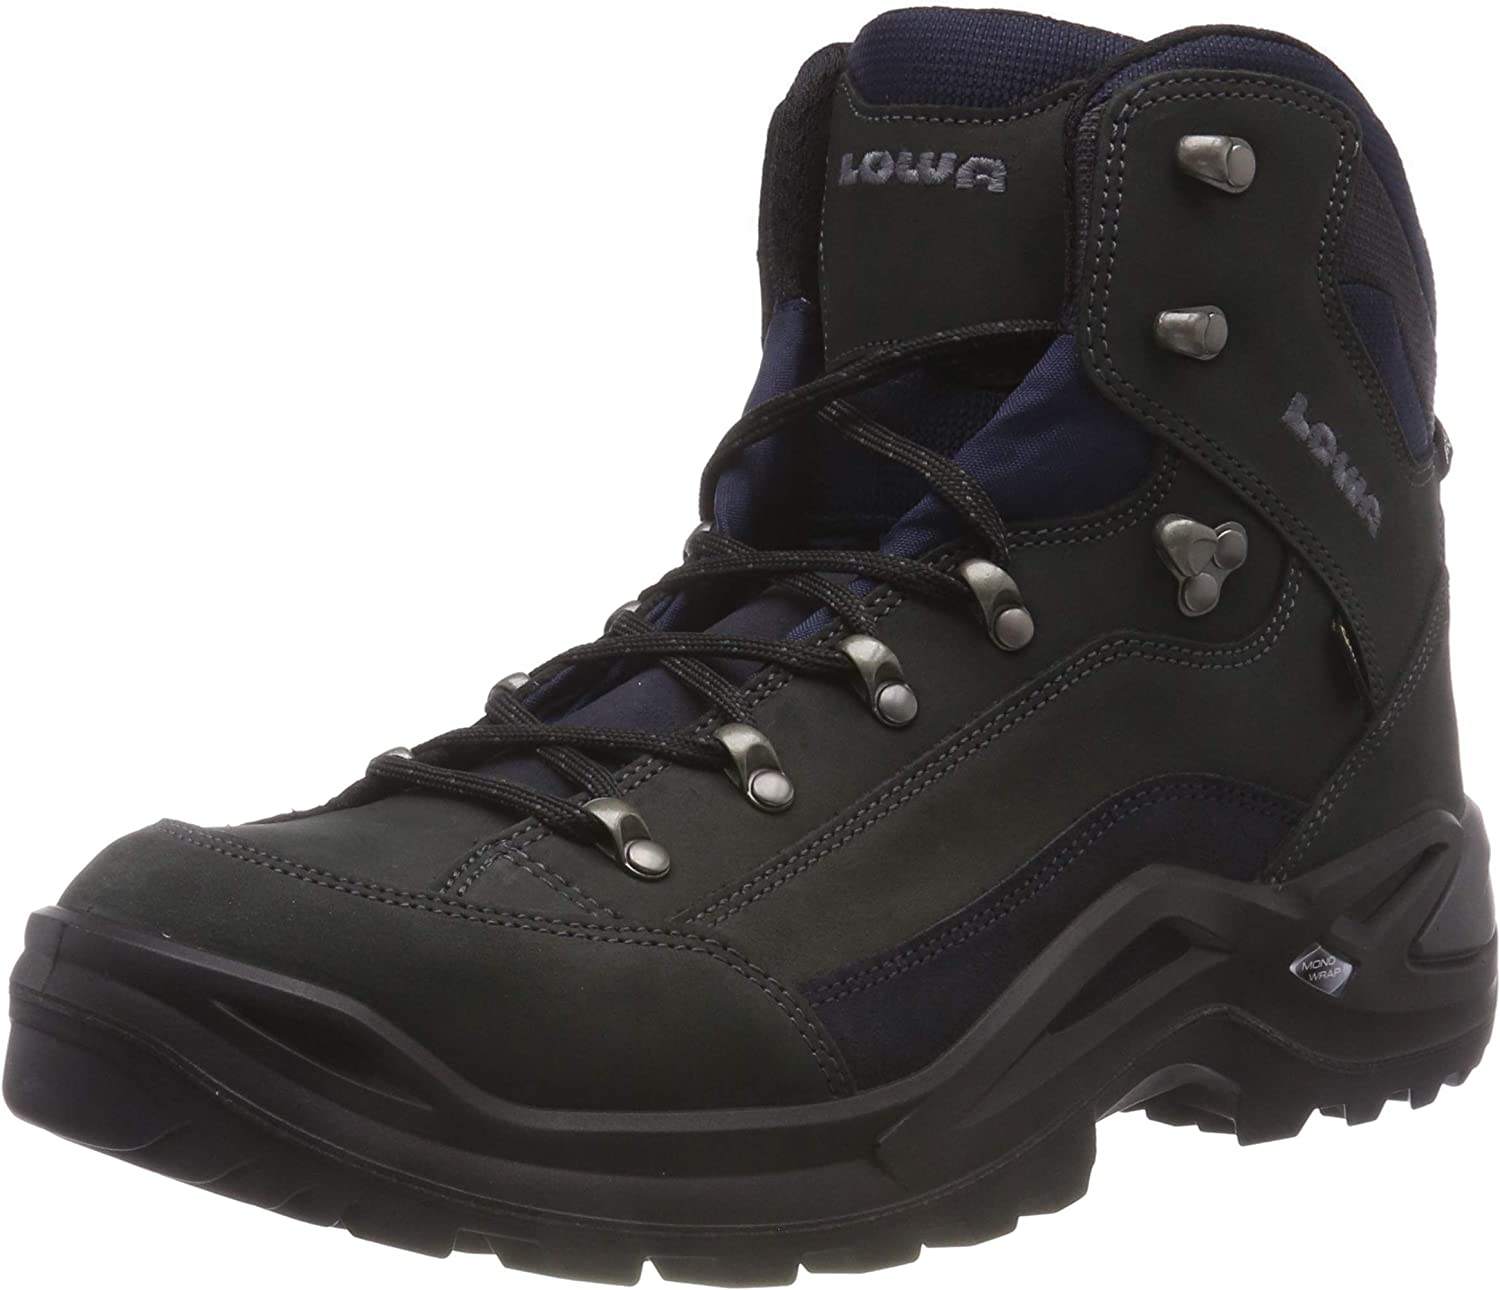 Lowa Men s Renegade GTX Mid Hiking Boot,Dark Grey Navy,12 M US